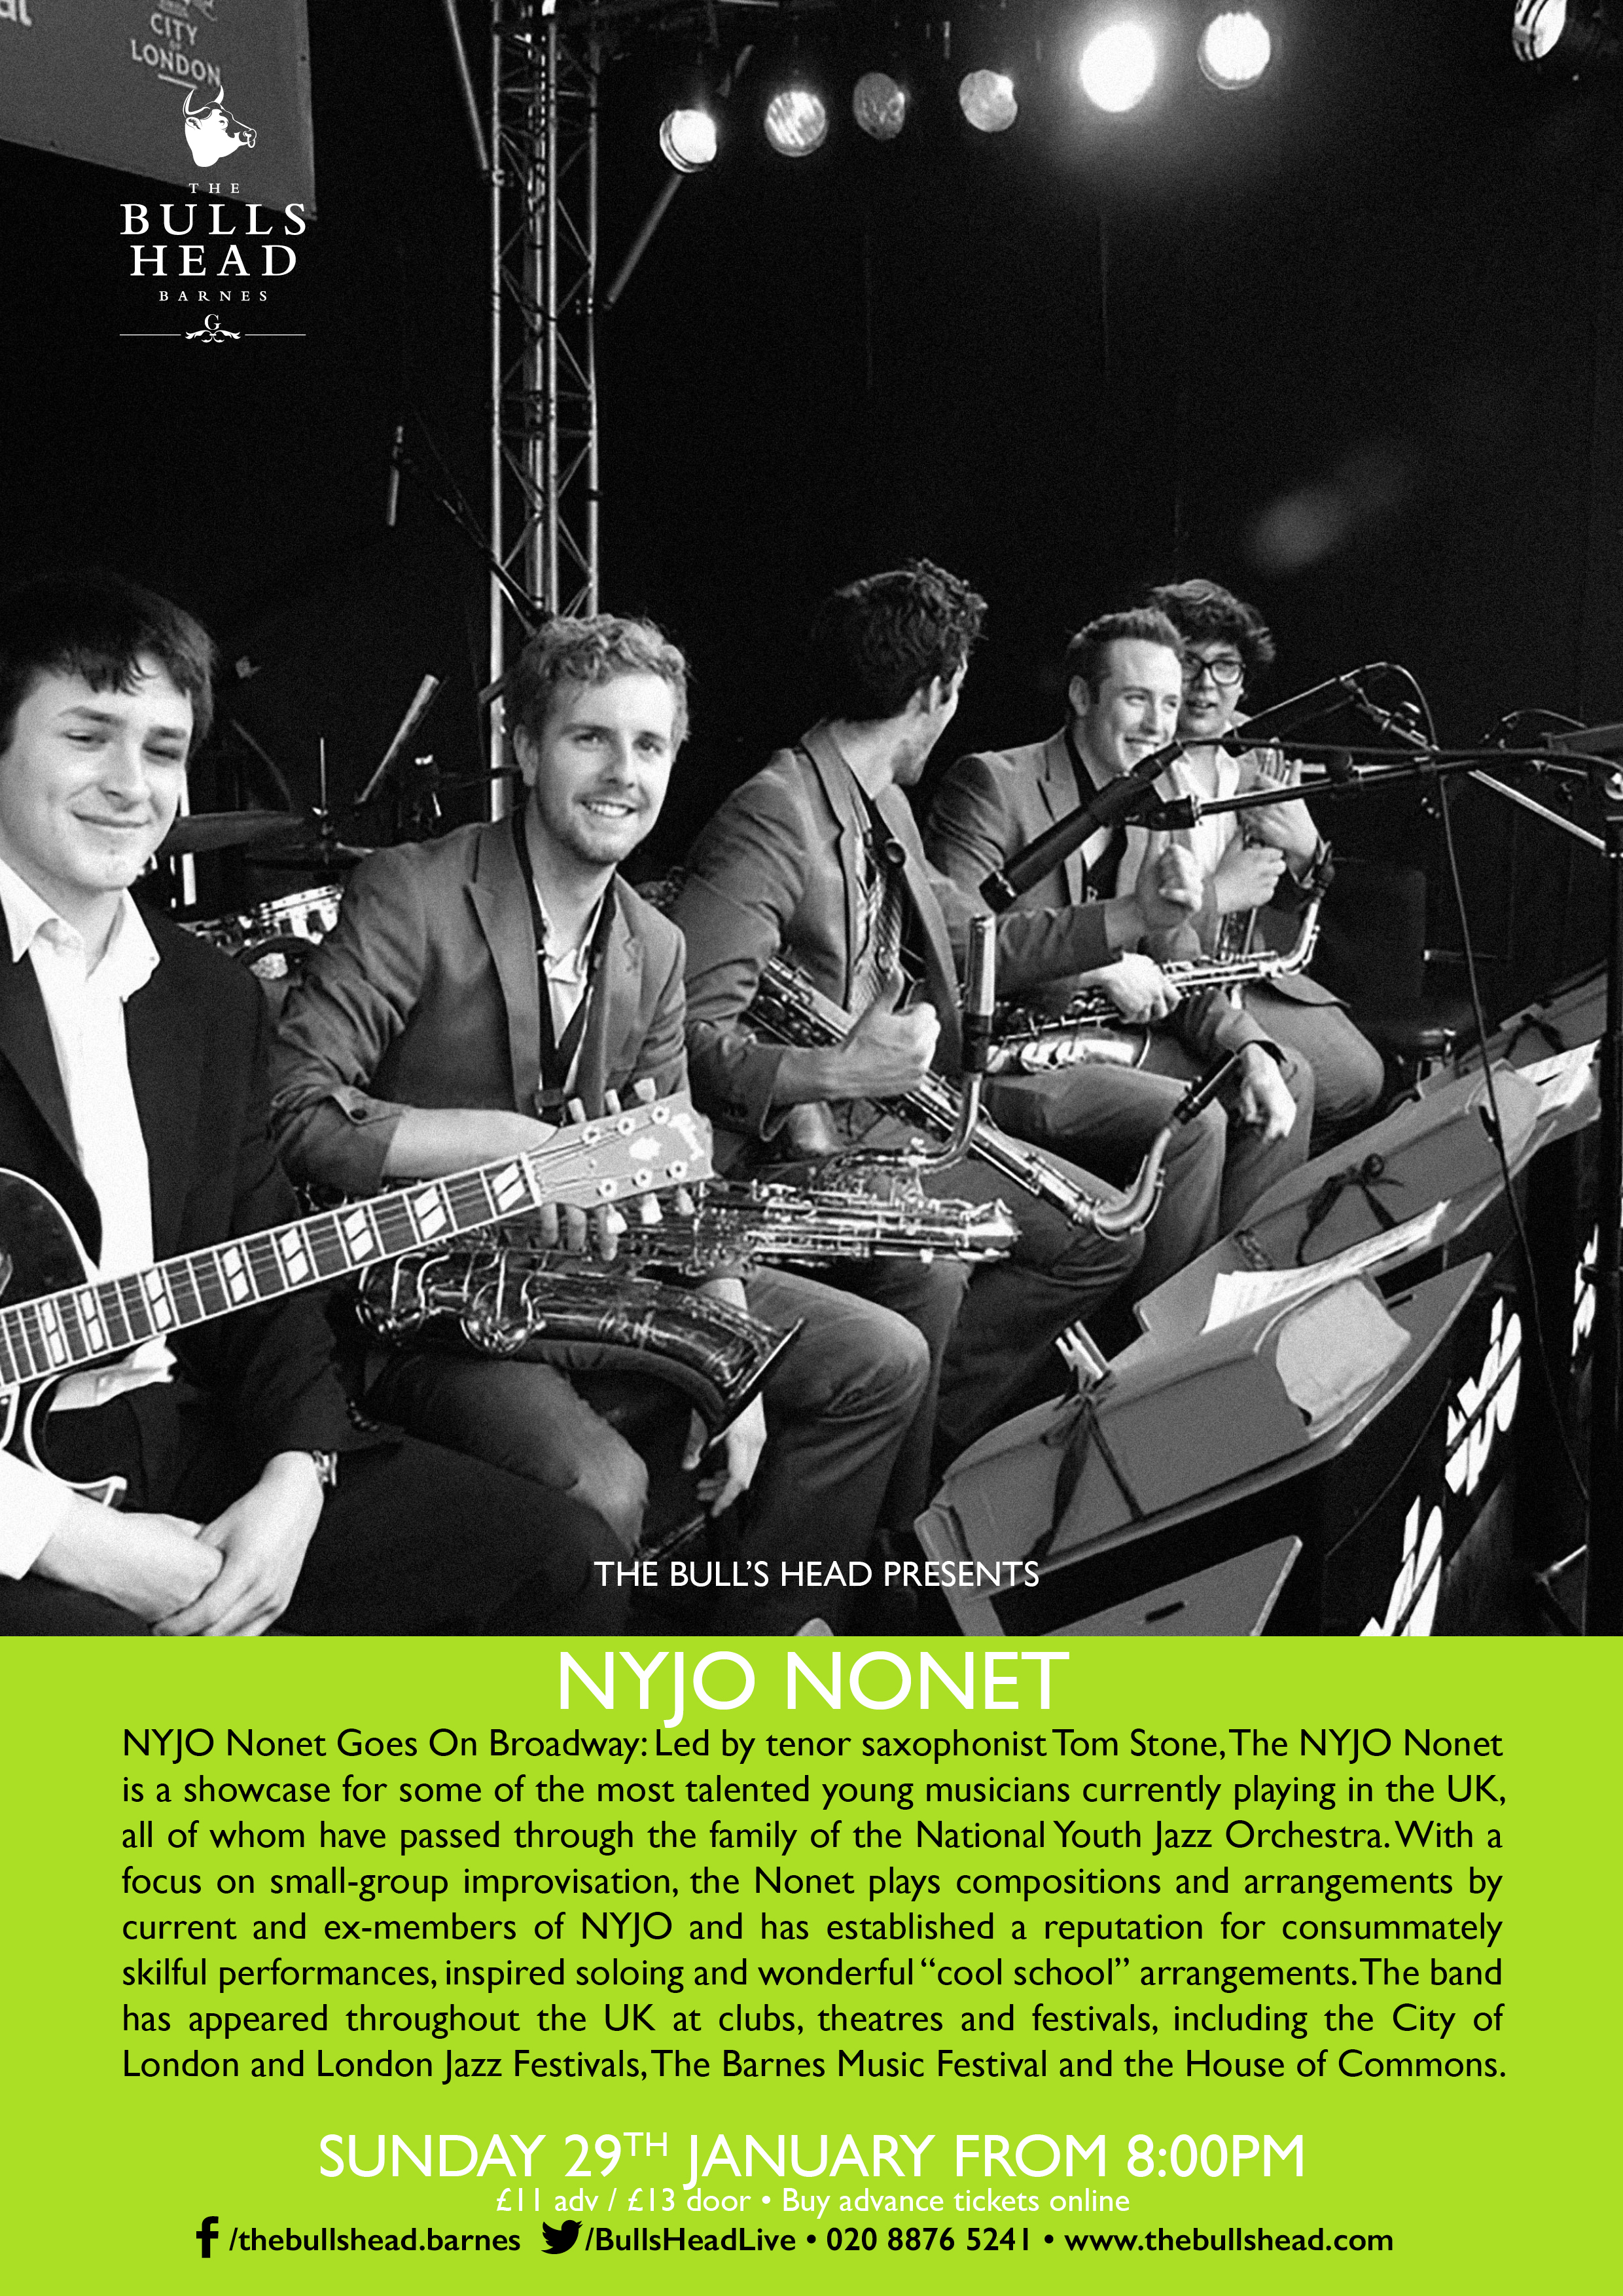 NYJO Nonet Goes On Broadway